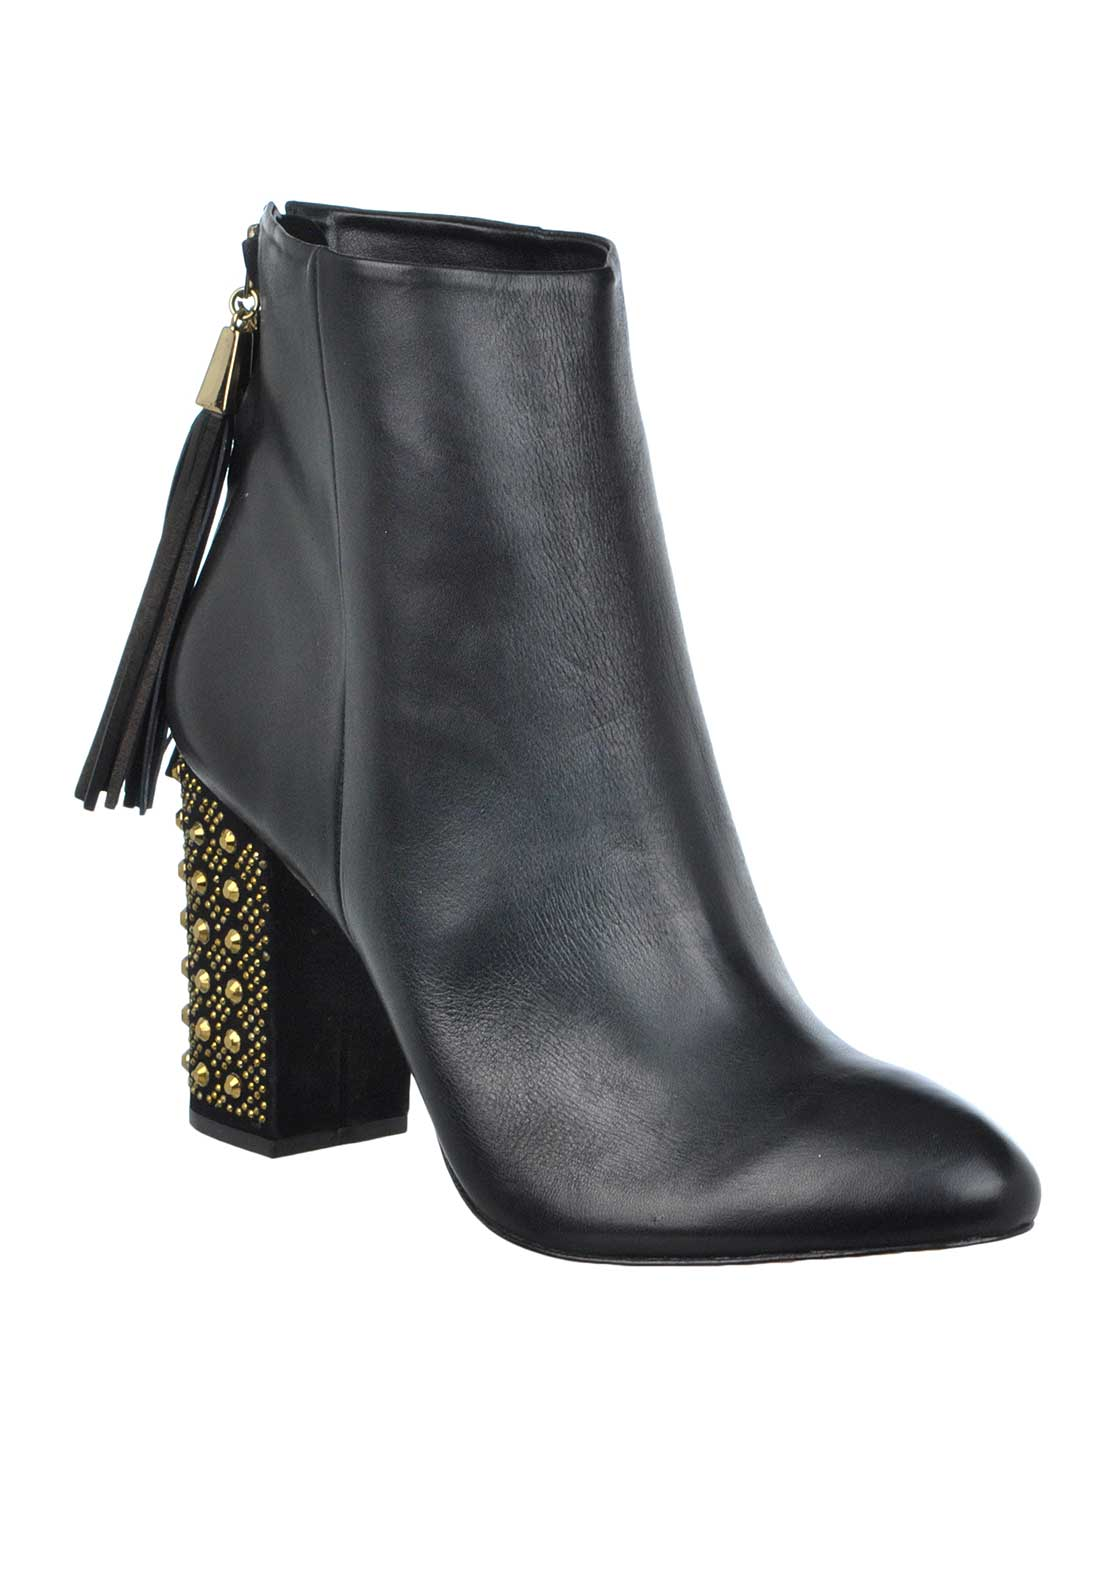 Unique Footwear Leather Jewell Embellished Block Heel Short Boots, Black